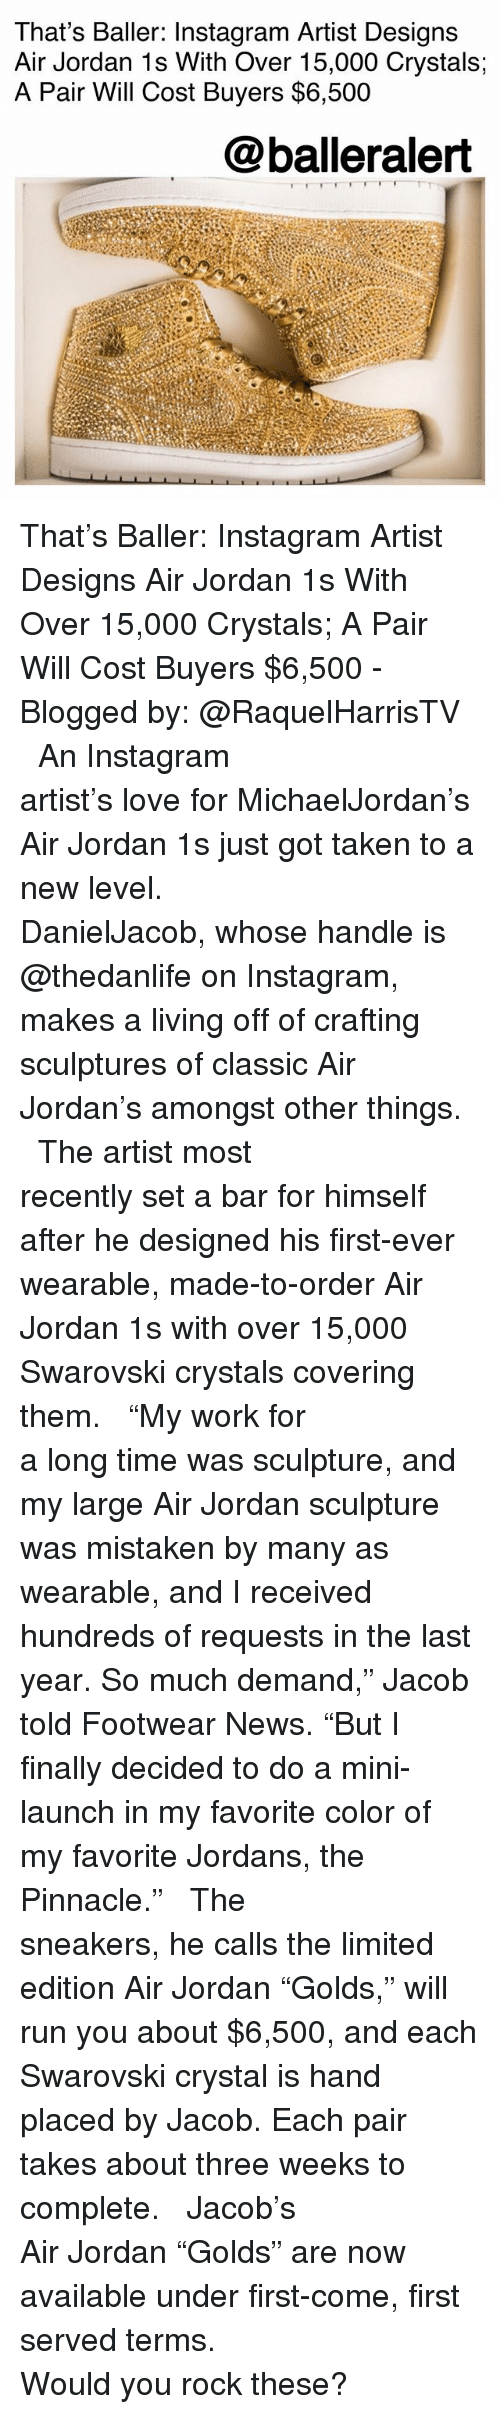 """Air Jordan: That's Baller: Instagram Artist Designs  Air Jordan 1s With Over 15,000 Crystals;  A Pair Will Cost Buyers $6,500  @balleralert That's Baller: Instagram Artist Designs Air Jordan 1s With Over 15,000 Crystals; A Pair Will Cost Buyers $6,500 - Blogged by: @RaquelHarrisTV ⠀⠀⠀⠀⠀⠀⠀⠀⠀ ⠀⠀⠀⠀⠀⠀⠀⠀⠀ An Instagram artist's love for MichaelJordan's Air Jordan 1s just got taken to a new level. ⠀⠀⠀⠀⠀⠀⠀⠀⠀ ⠀⠀⠀⠀⠀⠀⠀⠀⠀ DanielJacob, whose handle is @thedanlife on Instagram, makes a living off of crafting sculptures of classic Air Jordan's amongst other things. ⠀⠀⠀⠀⠀⠀⠀⠀⠀ ⠀⠀⠀⠀⠀⠀⠀⠀⠀ The artist most recently set a bar for himself after he designed his first-ever wearable, made-to-order Air Jordan 1s with over 15,000 Swarovski crystals covering them. ⠀⠀⠀⠀⠀⠀⠀⠀⠀ ⠀⠀⠀⠀⠀⠀⠀⠀⠀ """"My work for a long time was sculpture, and my large Air Jordan sculpture was mistaken by many as wearable, and I received hundreds of requests in the last year. So much demand,"""" Jacob told Footwear News. """"But I finally decided to do a mini-launch in my favorite color of my favorite Jordans, the Pinnacle."""" ⠀⠀⠀⠀⠀⠀⠀⠀⠀ ⠀⠀⠀⠀⠀⠀⠀⠀⠀ The sneakers, he calls the limited edition Air Jordan """"Golds,"""" will run you about $6,500, and each Swarovski crystal is hand placed by Jacob. Each pair takes about three weeks to complete. ⠀⠀⠀⠀⠀⠀⠀⠀⠀ ⠀⠀⠀⠀⠀⠀⠀⠀⠀ Jacob's Air Jordan """"Golds"""" are now available under first-come, first served terms. ⠀⠀⠀⠀⠀⠀⠀⠀⠀ ⠀⠀⠀⠀⠀⠀⠀⠀⠀ Would you rock these?"""